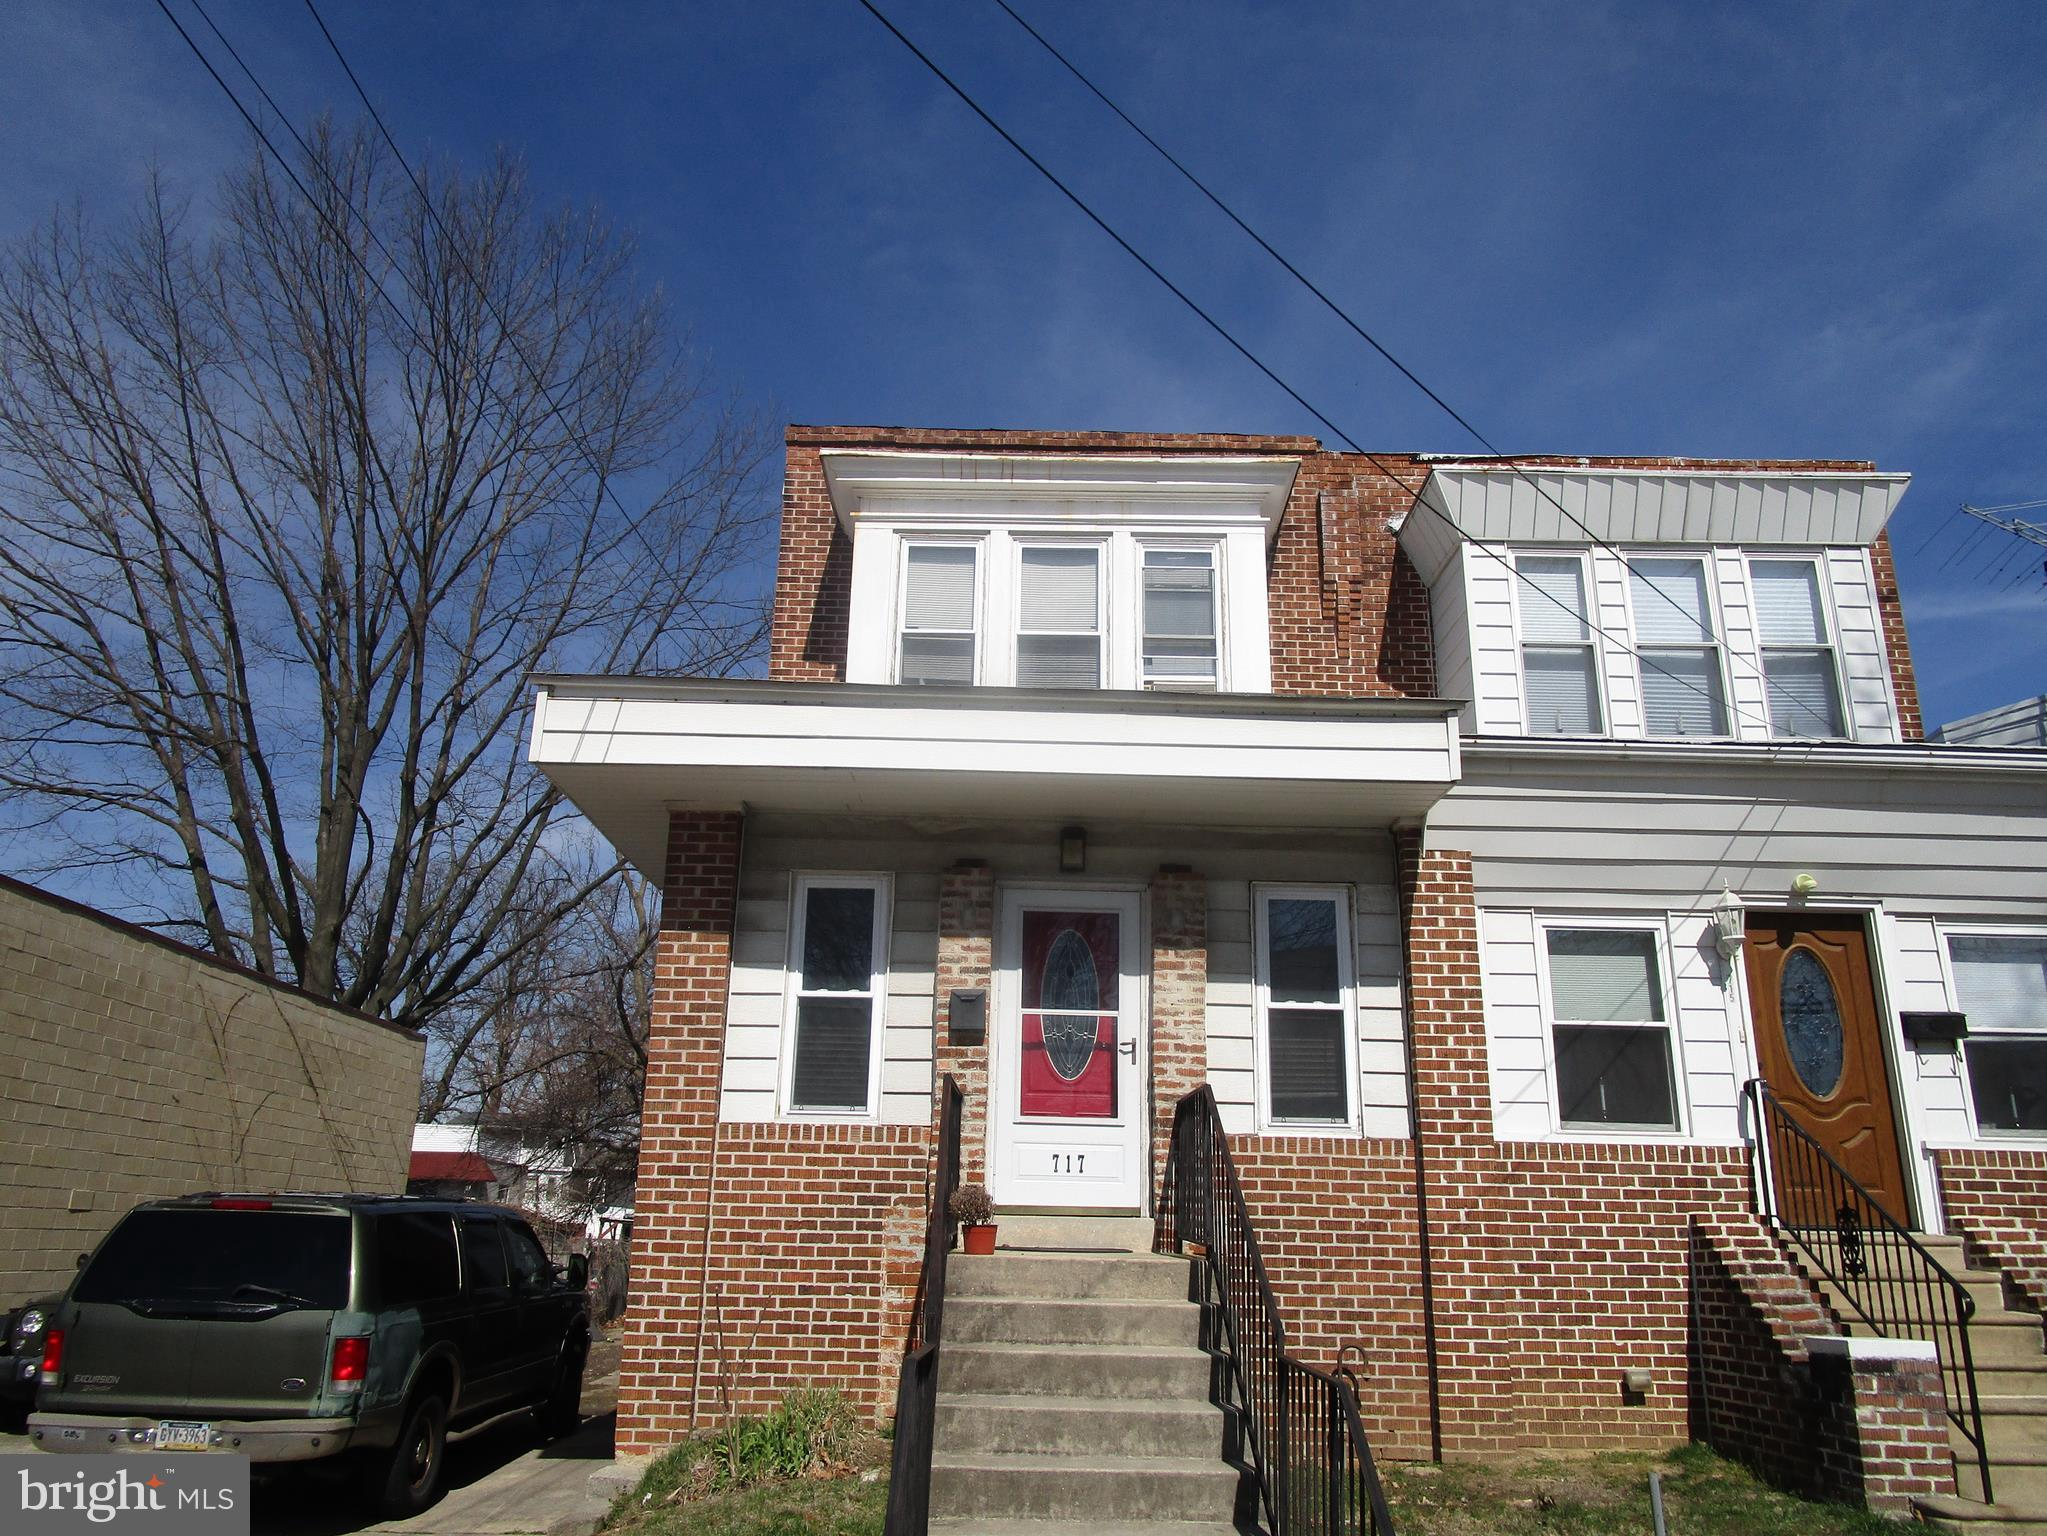 717 ANDREWS AVENUE, DARBY, PA 19023